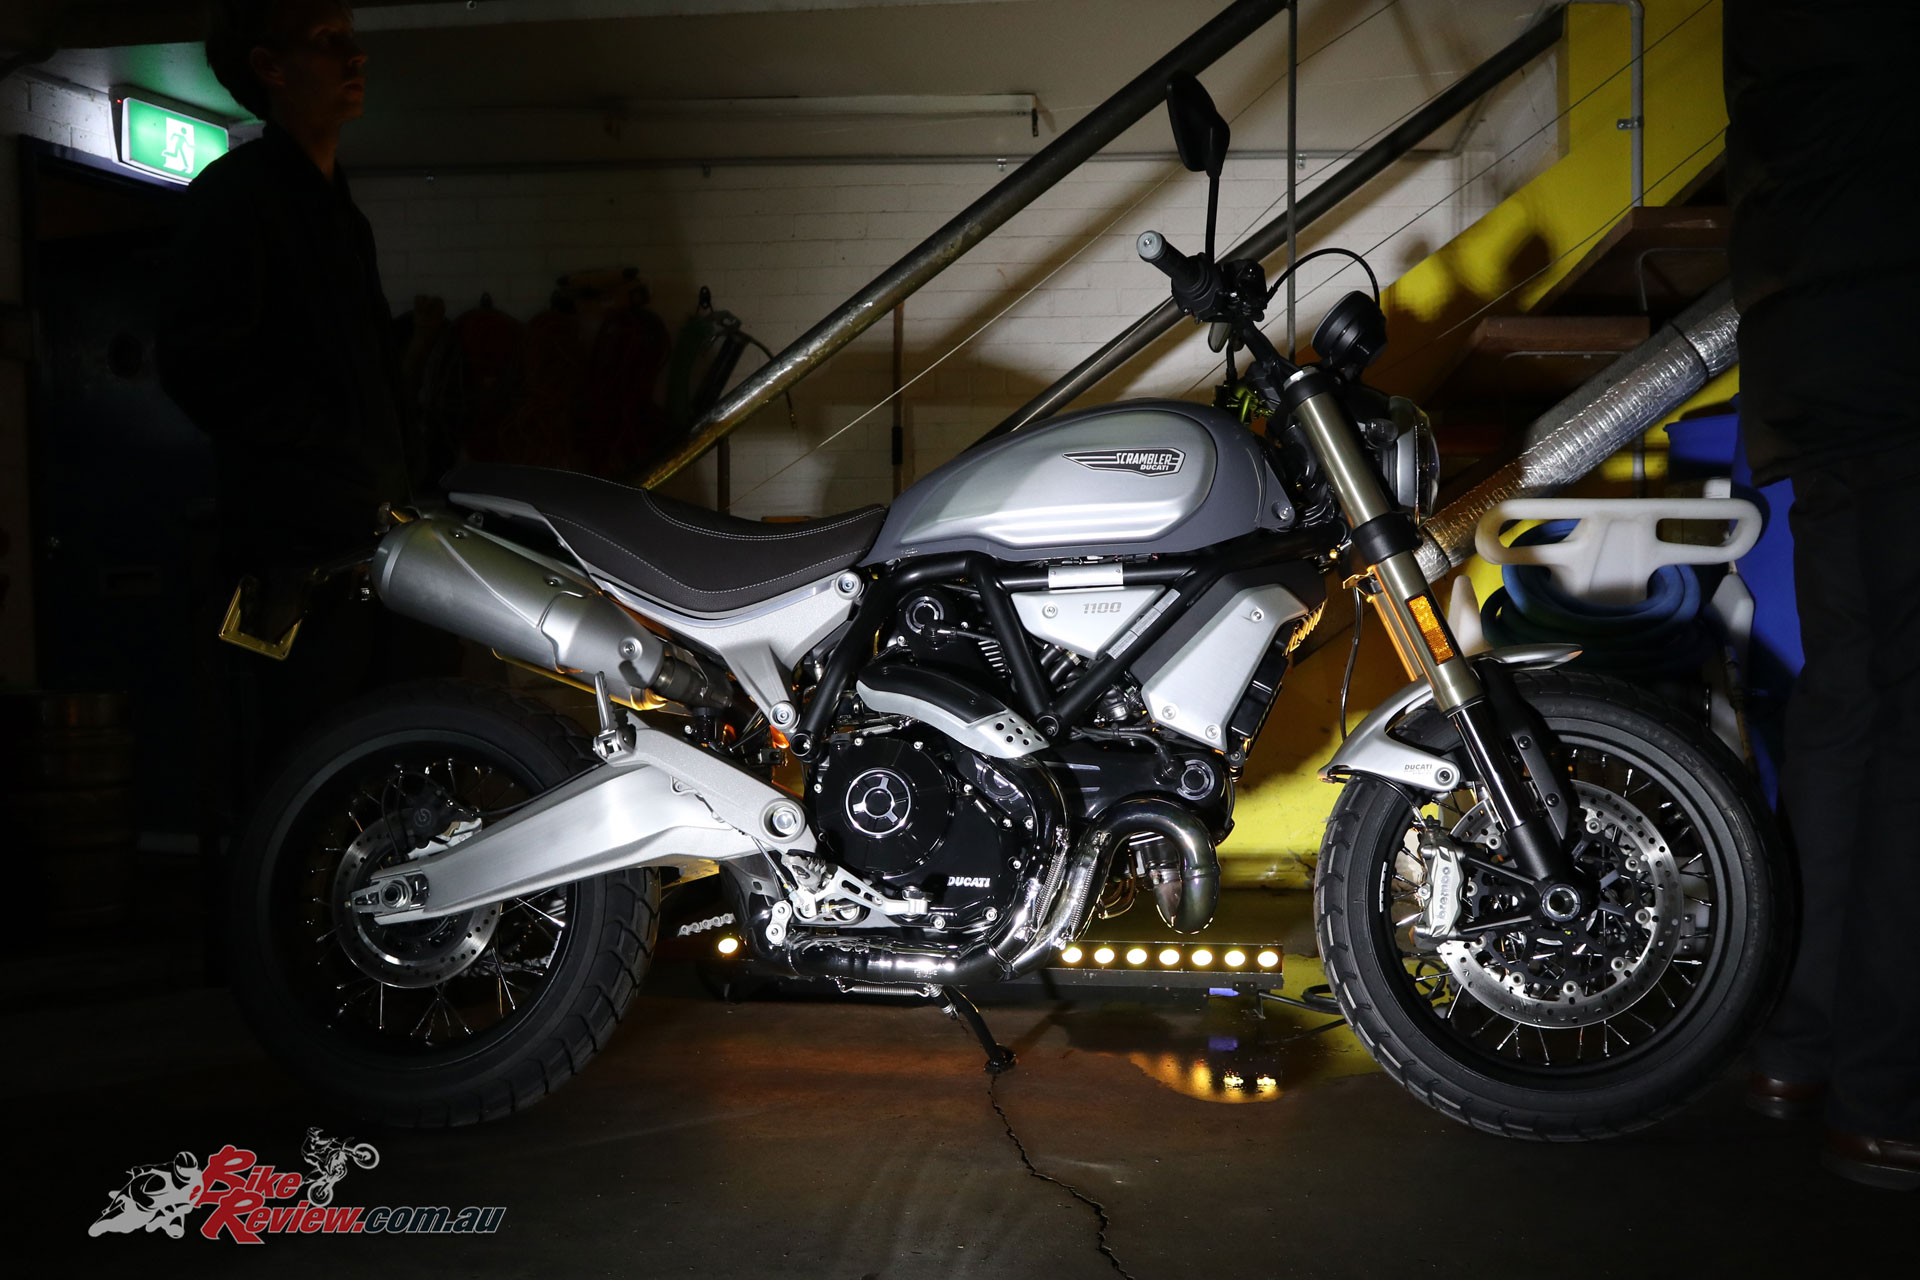 Ducati Scrambler 1100 Special - Spoked wheels, chromed headers, low 'bars, brushed aluminium swingarm